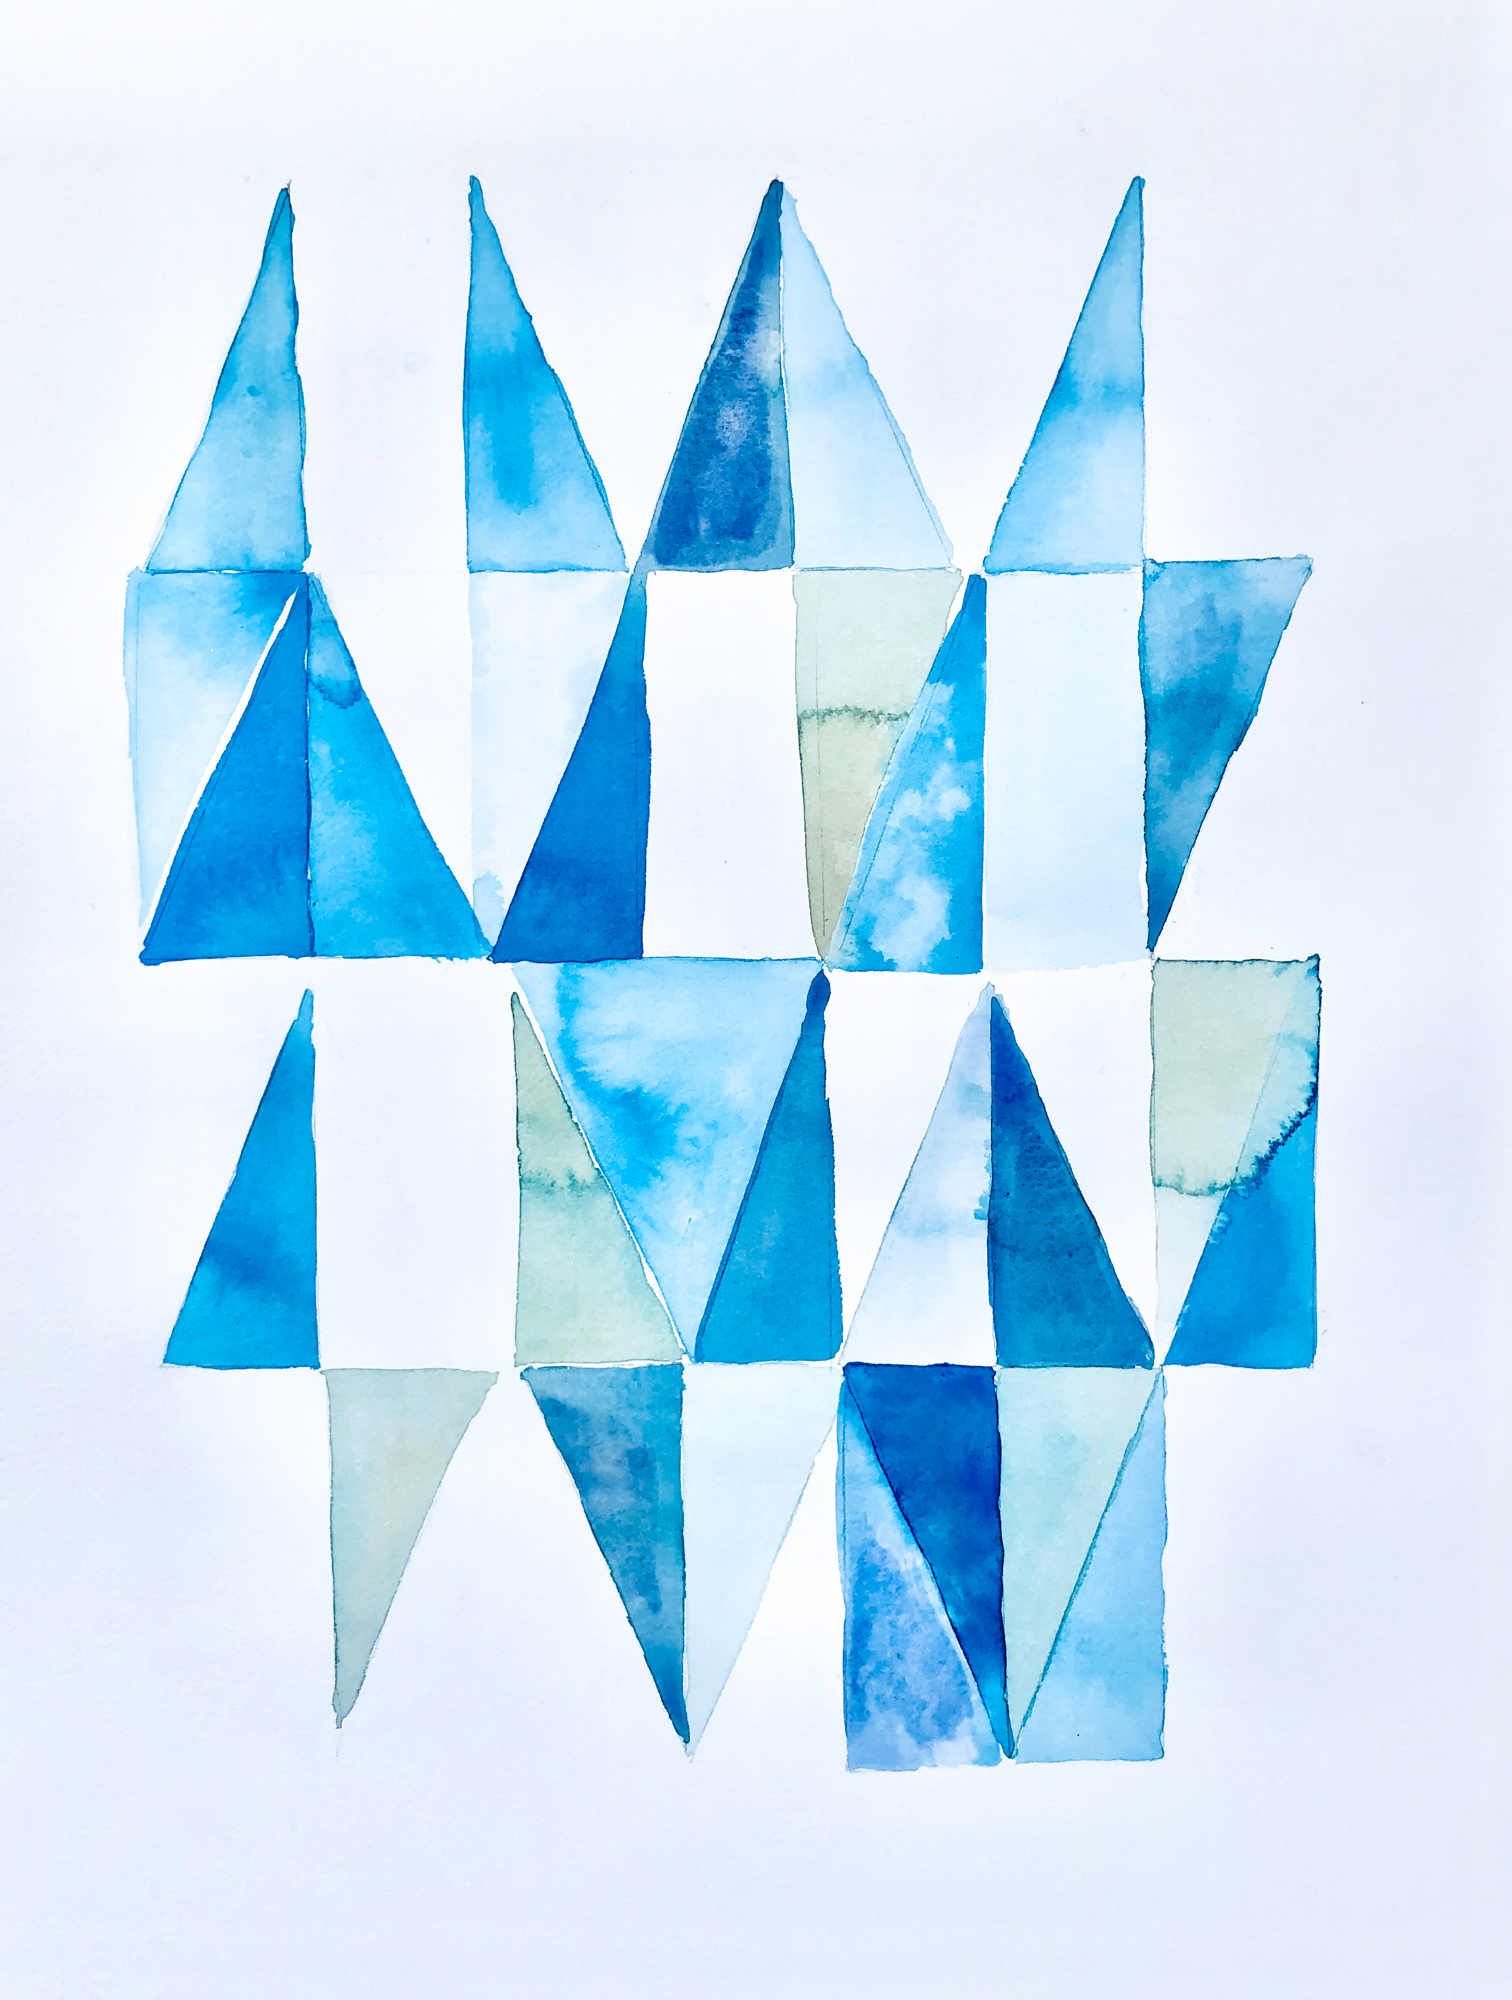 Blue Geometry 6, 2019, mixed media on paper, 16 x 20 in, $3,000